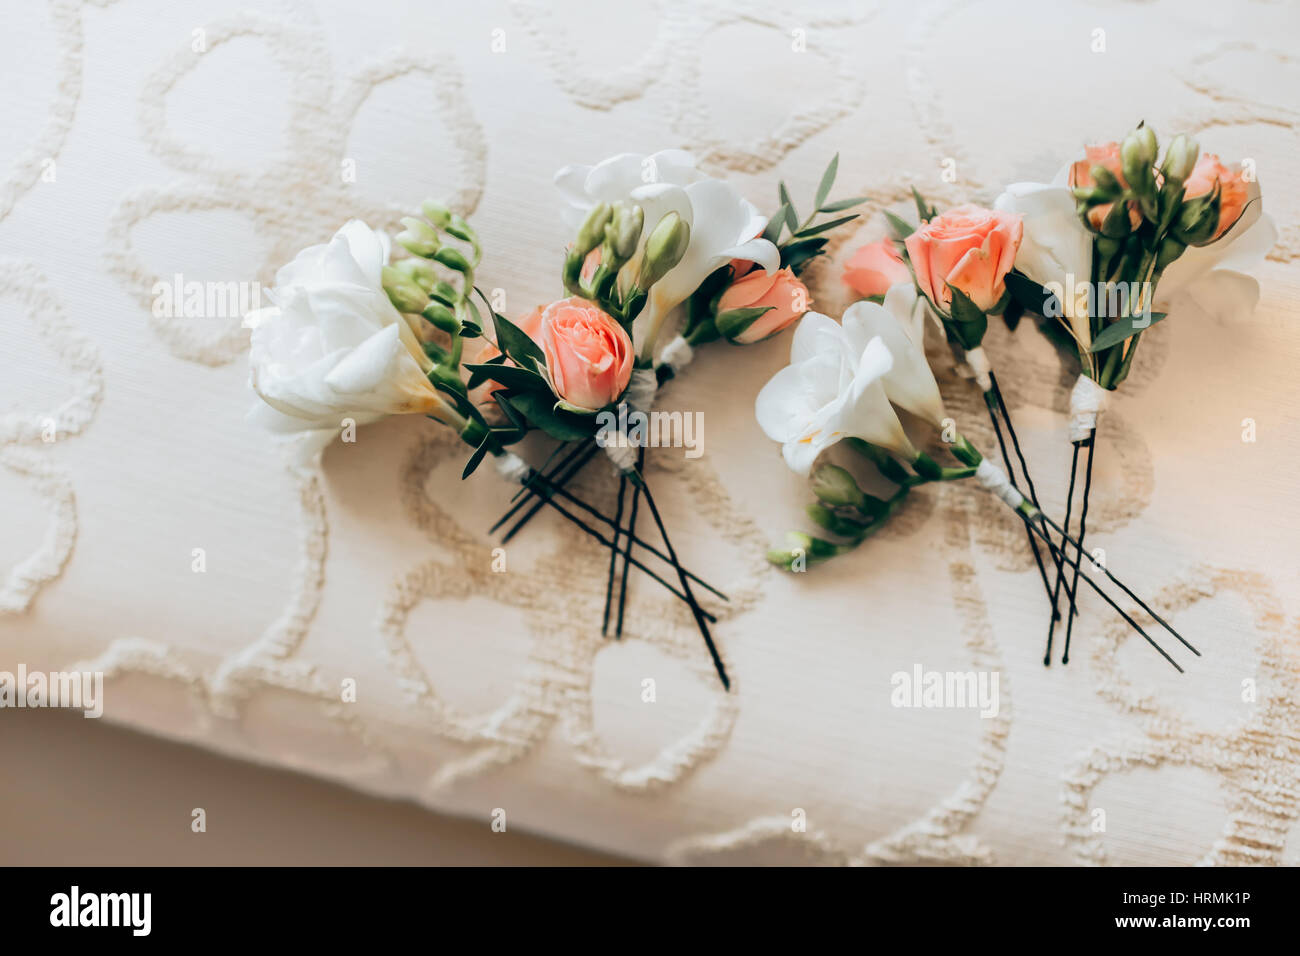 Small Bouquets Stock Photos & Small Bouquets Stock Images - Alamy